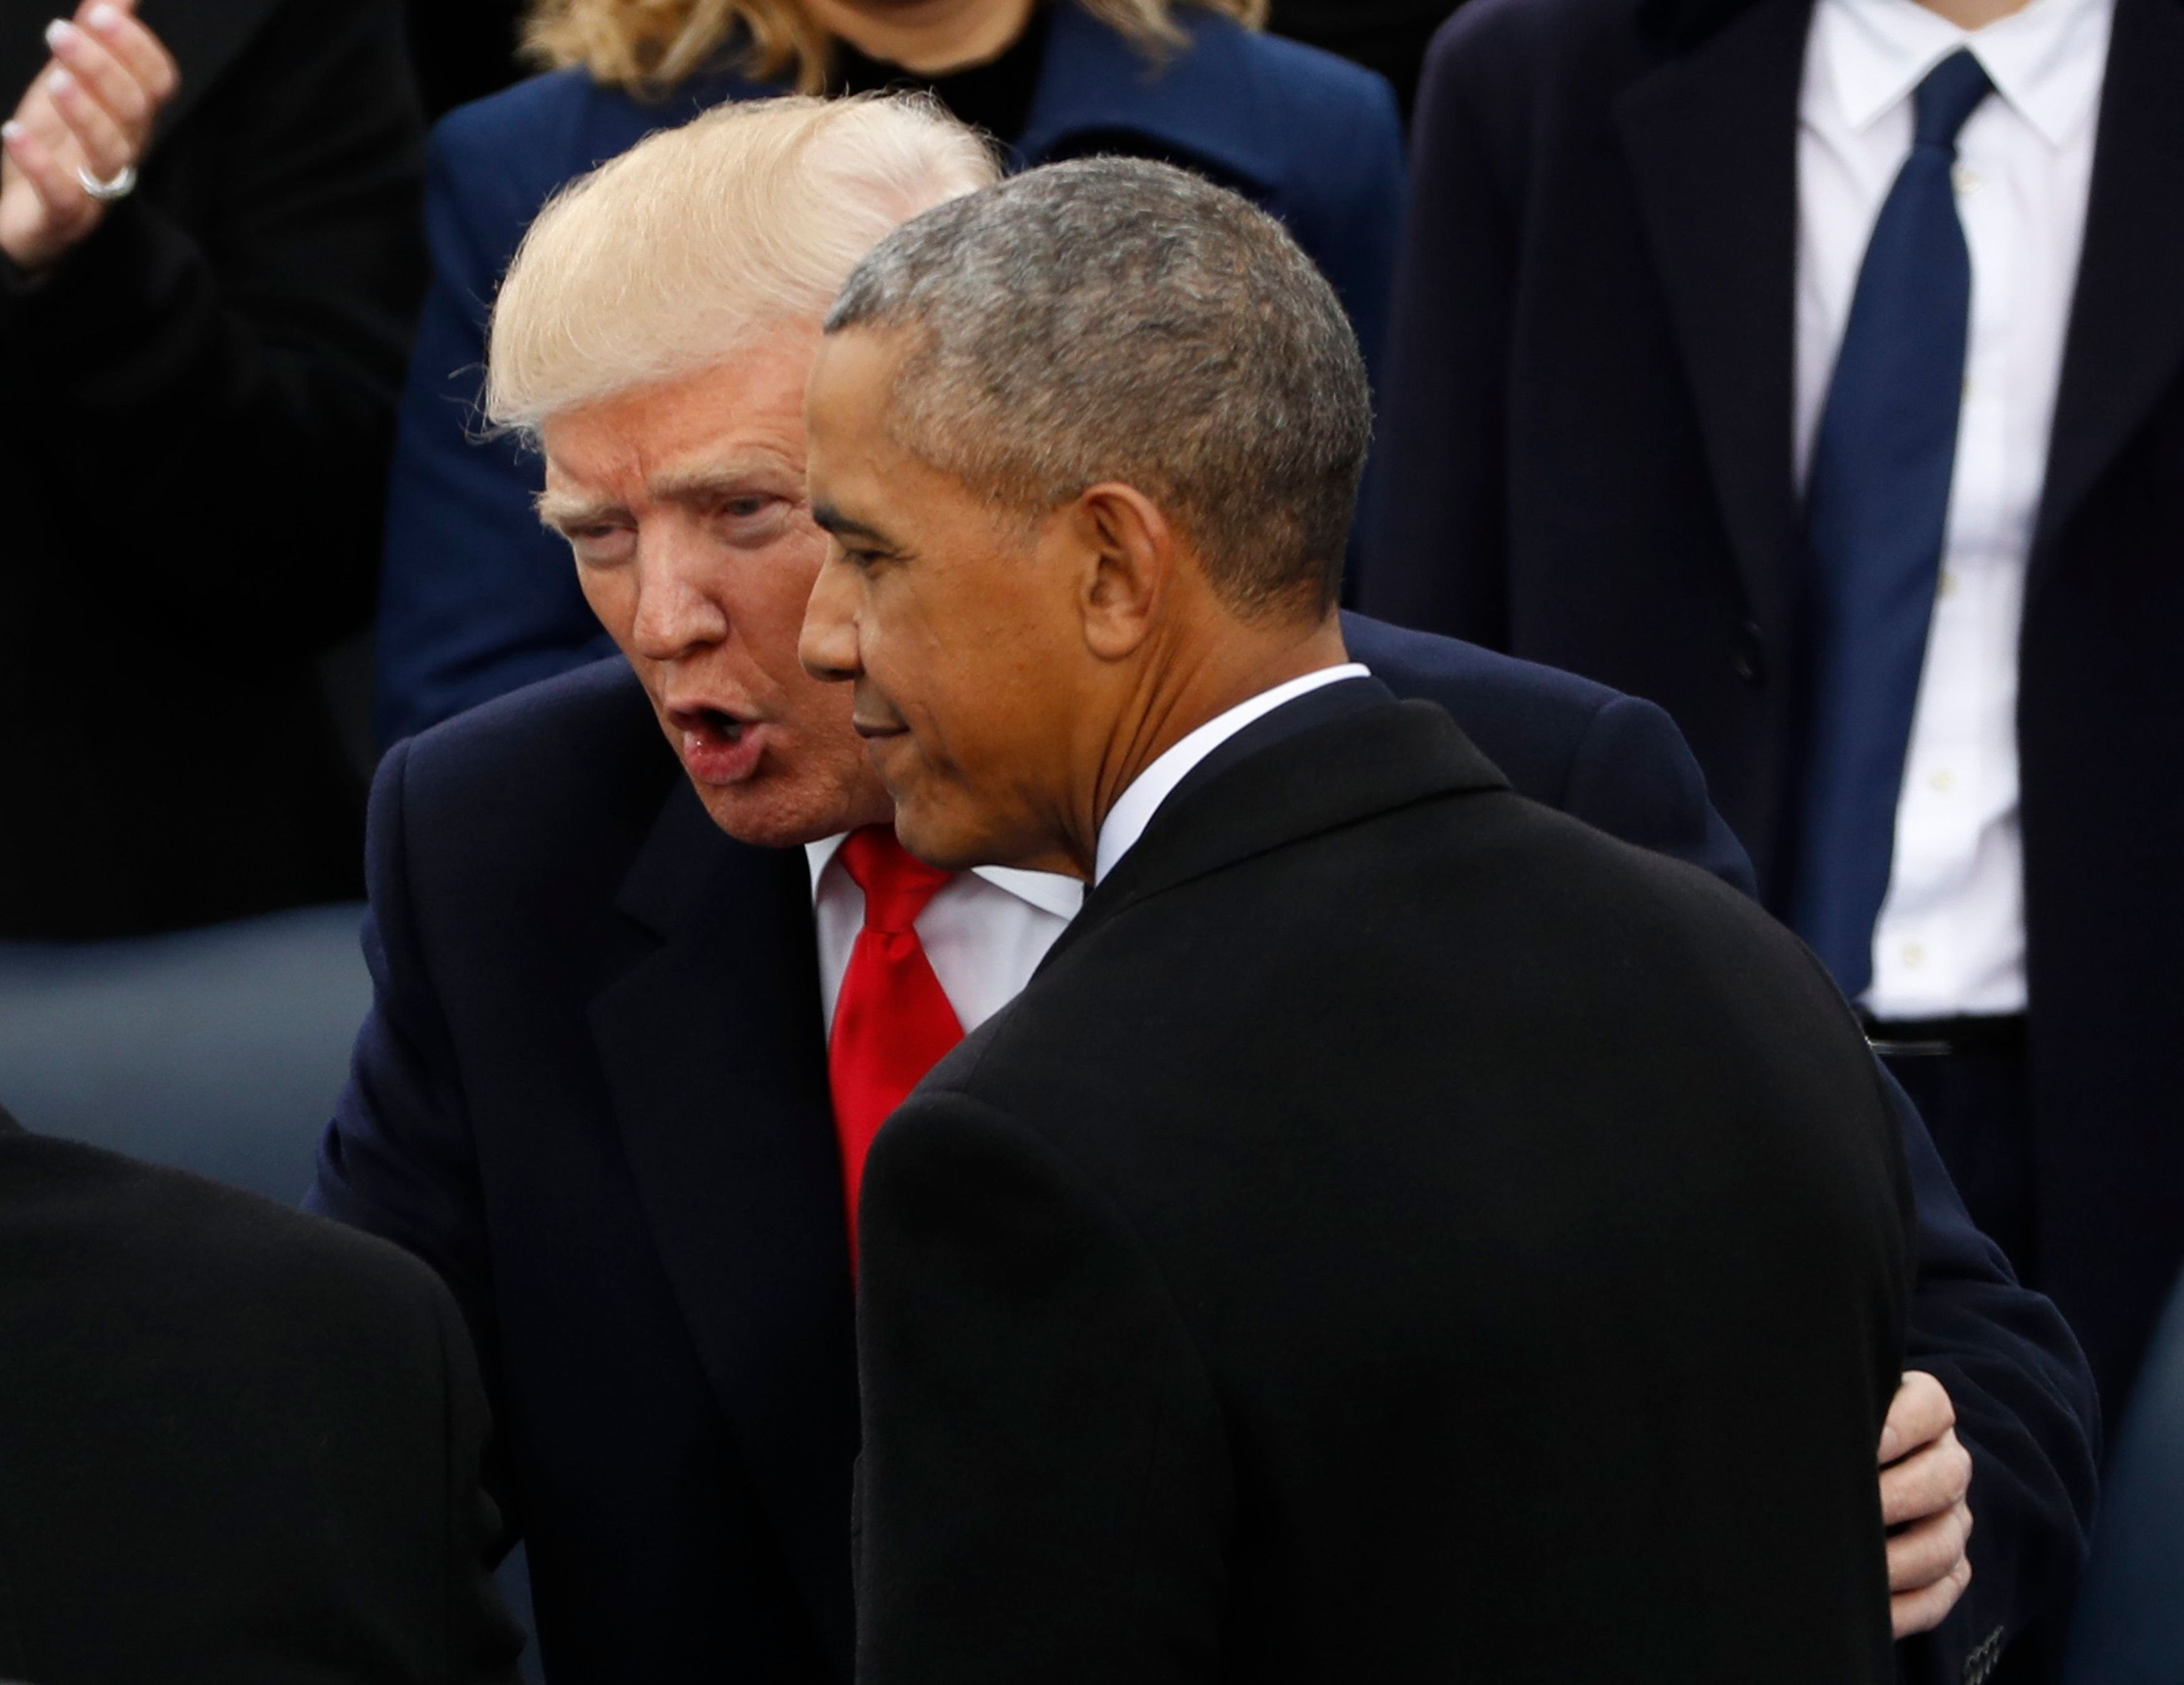 U.S. President-elect Donald Trump (L) talks with U.S. President Barack Obama before inauguration ceremonies swearing in Donald Trump as the 45th president of the United States on the West front of the U.S. Capitol in Washington, DC, U.S., January 20, 2017. REUTERS/Kevin Lamarque